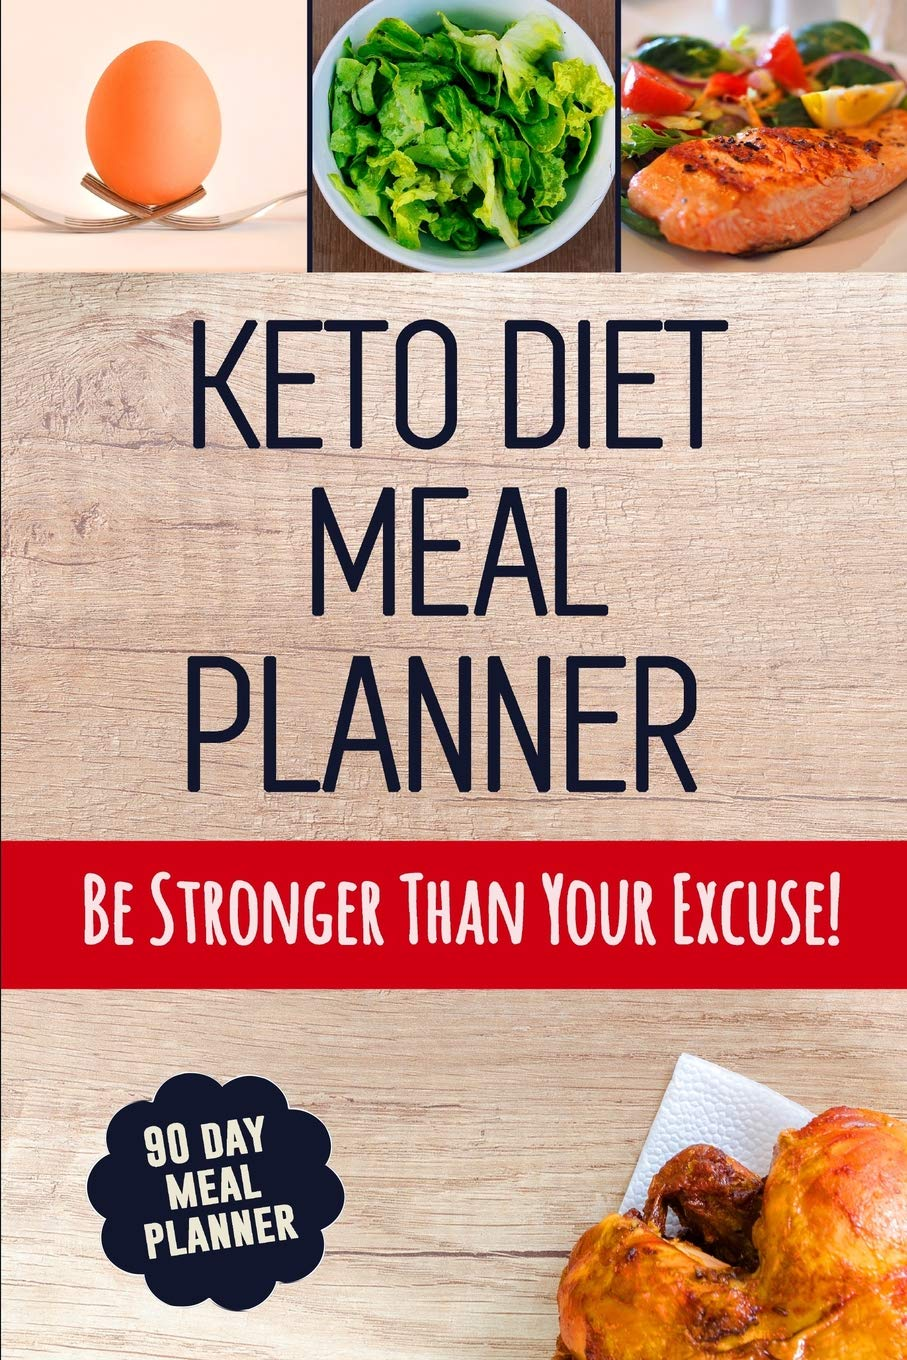 Buy Keto Diet Meal Planner A 90 Day Low Carb Meal Planner To Help You Lose Weight Be Stronger Than Your Excuse Follow Your Ketogenic Diet And Track What You Eat Book